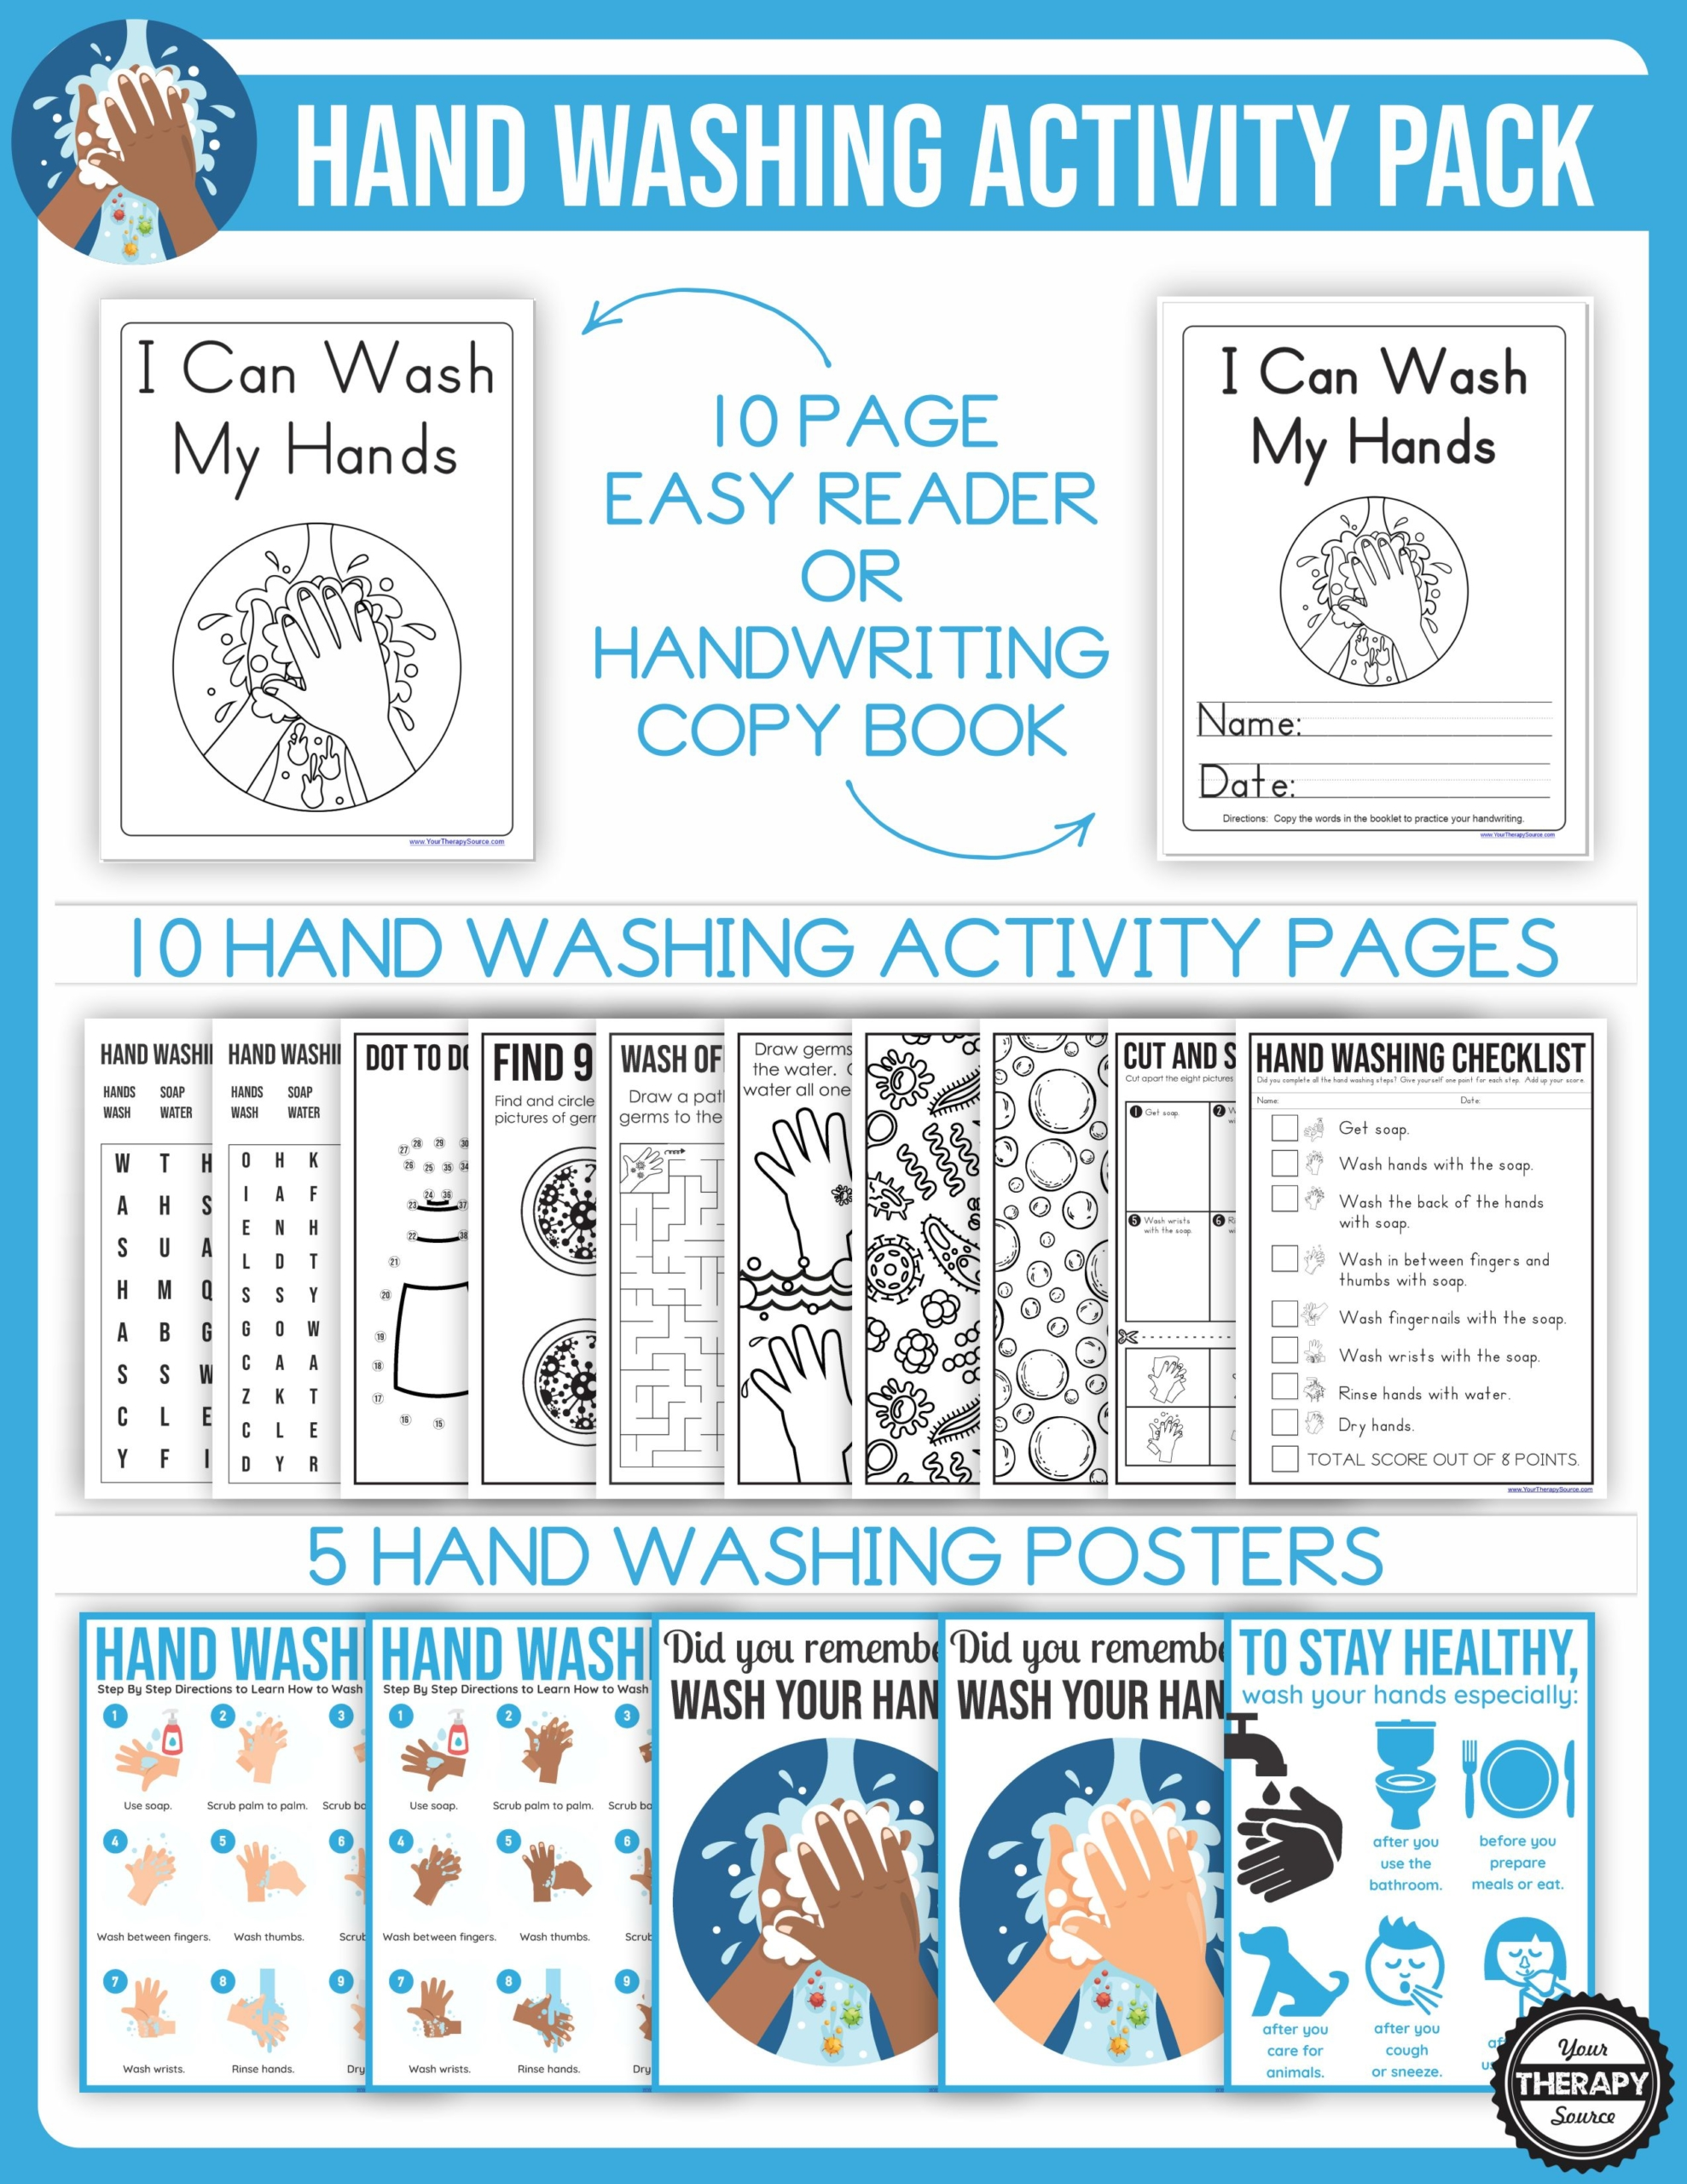 Hand Washing Activities Packet - Your Therapy Source